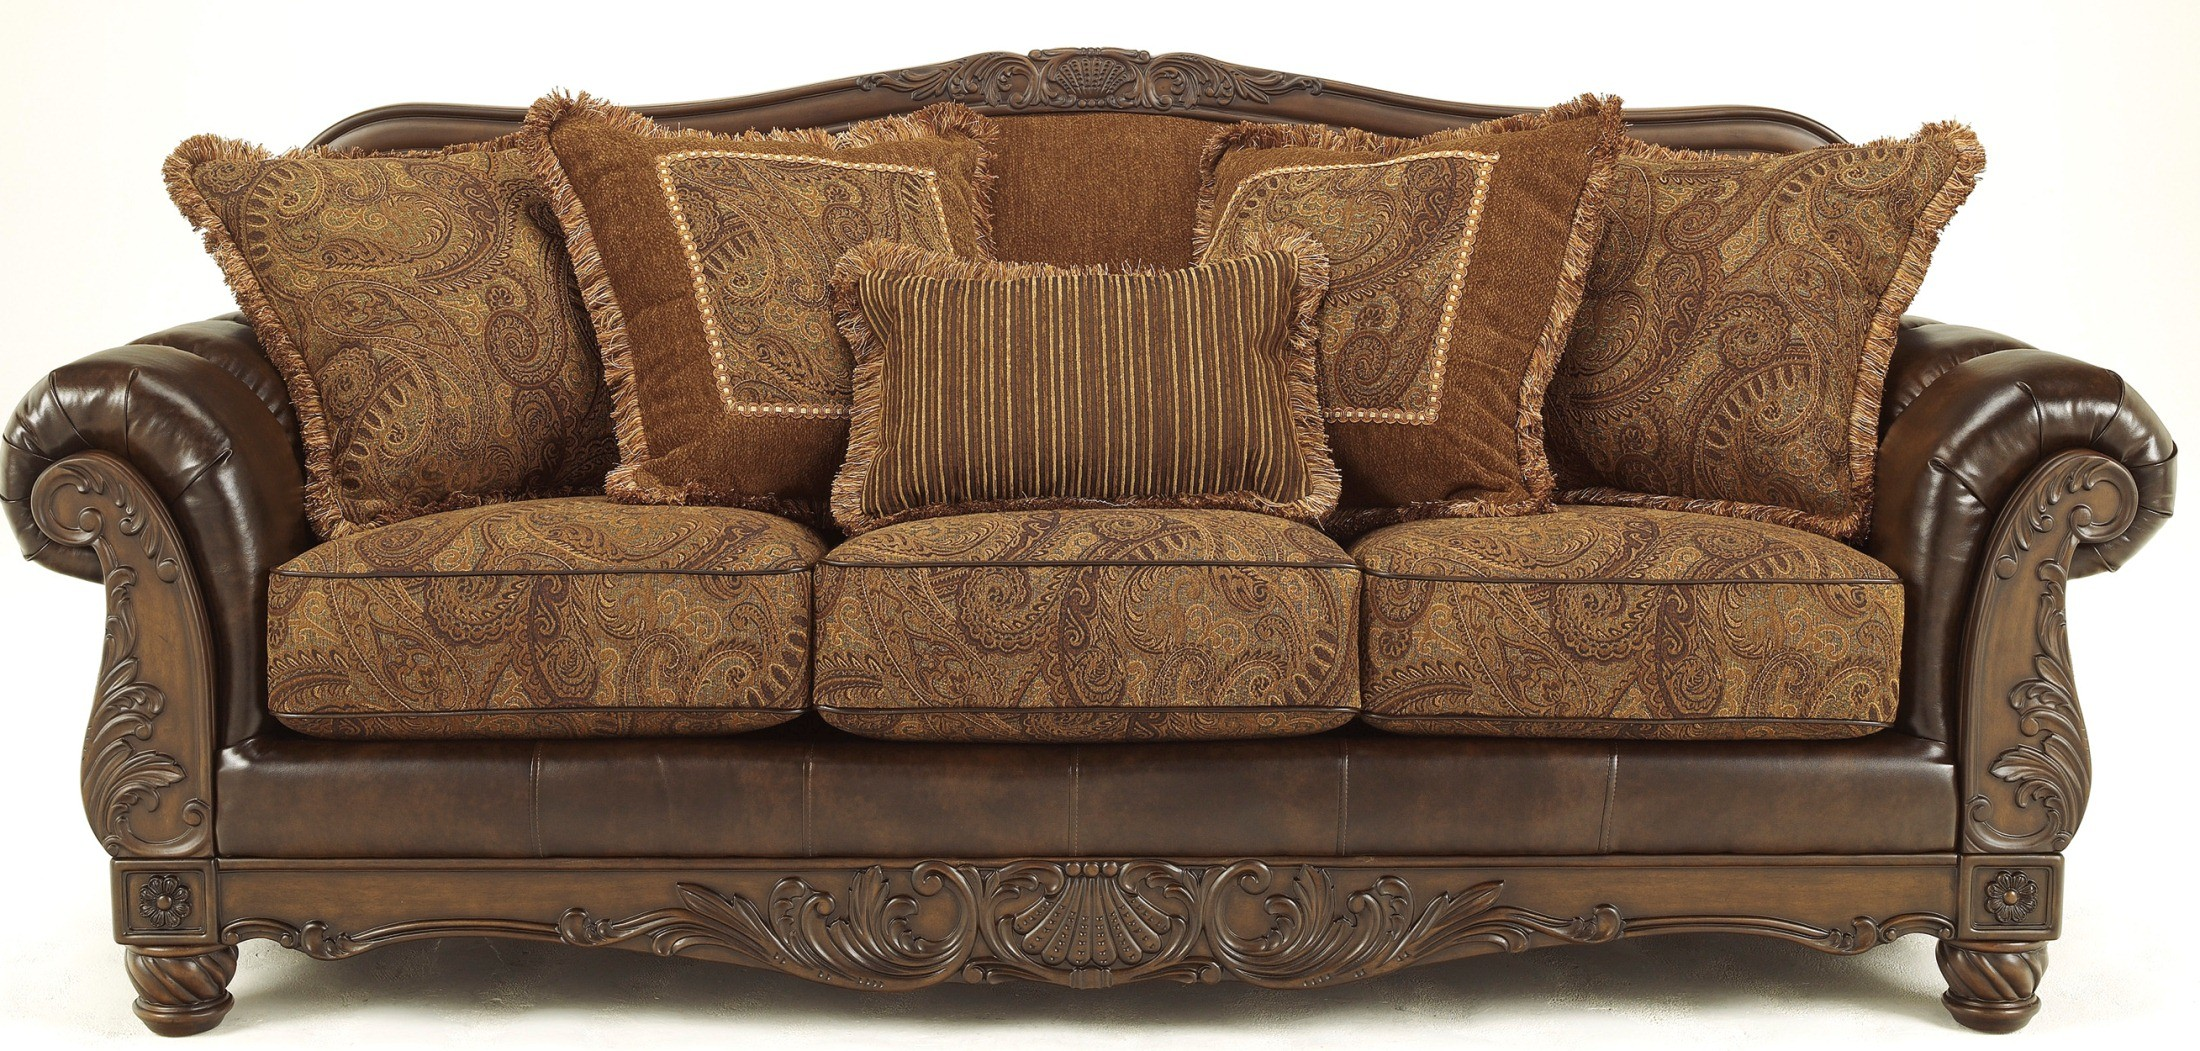 antique sofa 241714 XBUKGVF